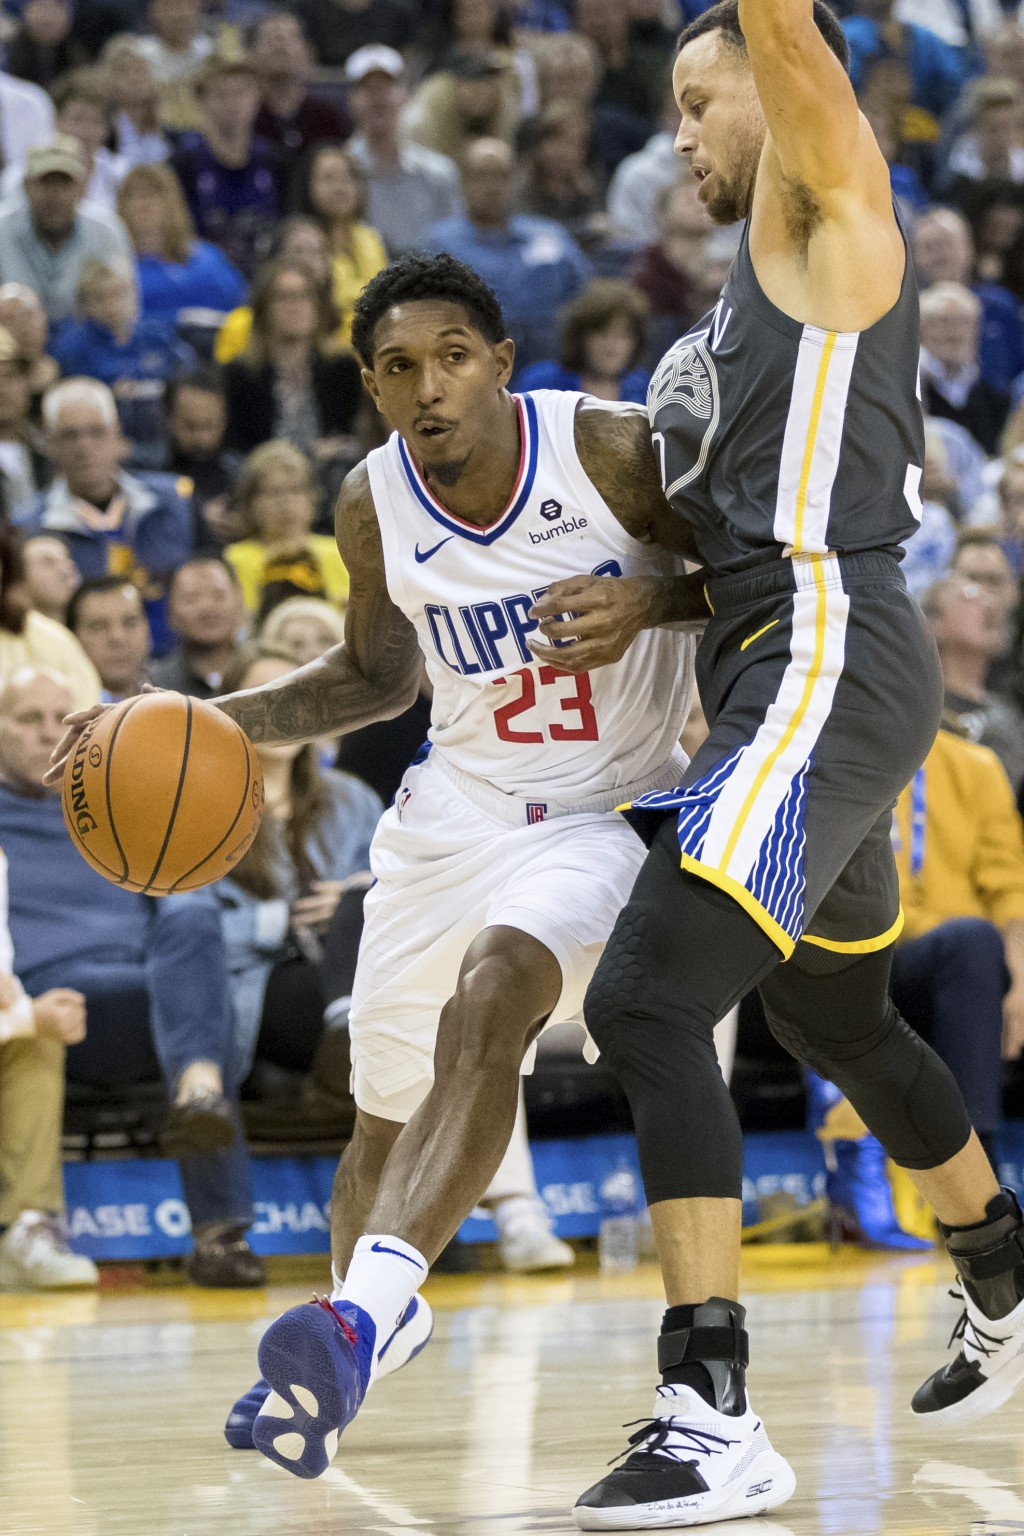 Los Angeles Clippers guard Lou Williams (23) dribbles as Golden State Warriors guard Stephen Curry defends in the second quarter of an NBA basketball ...